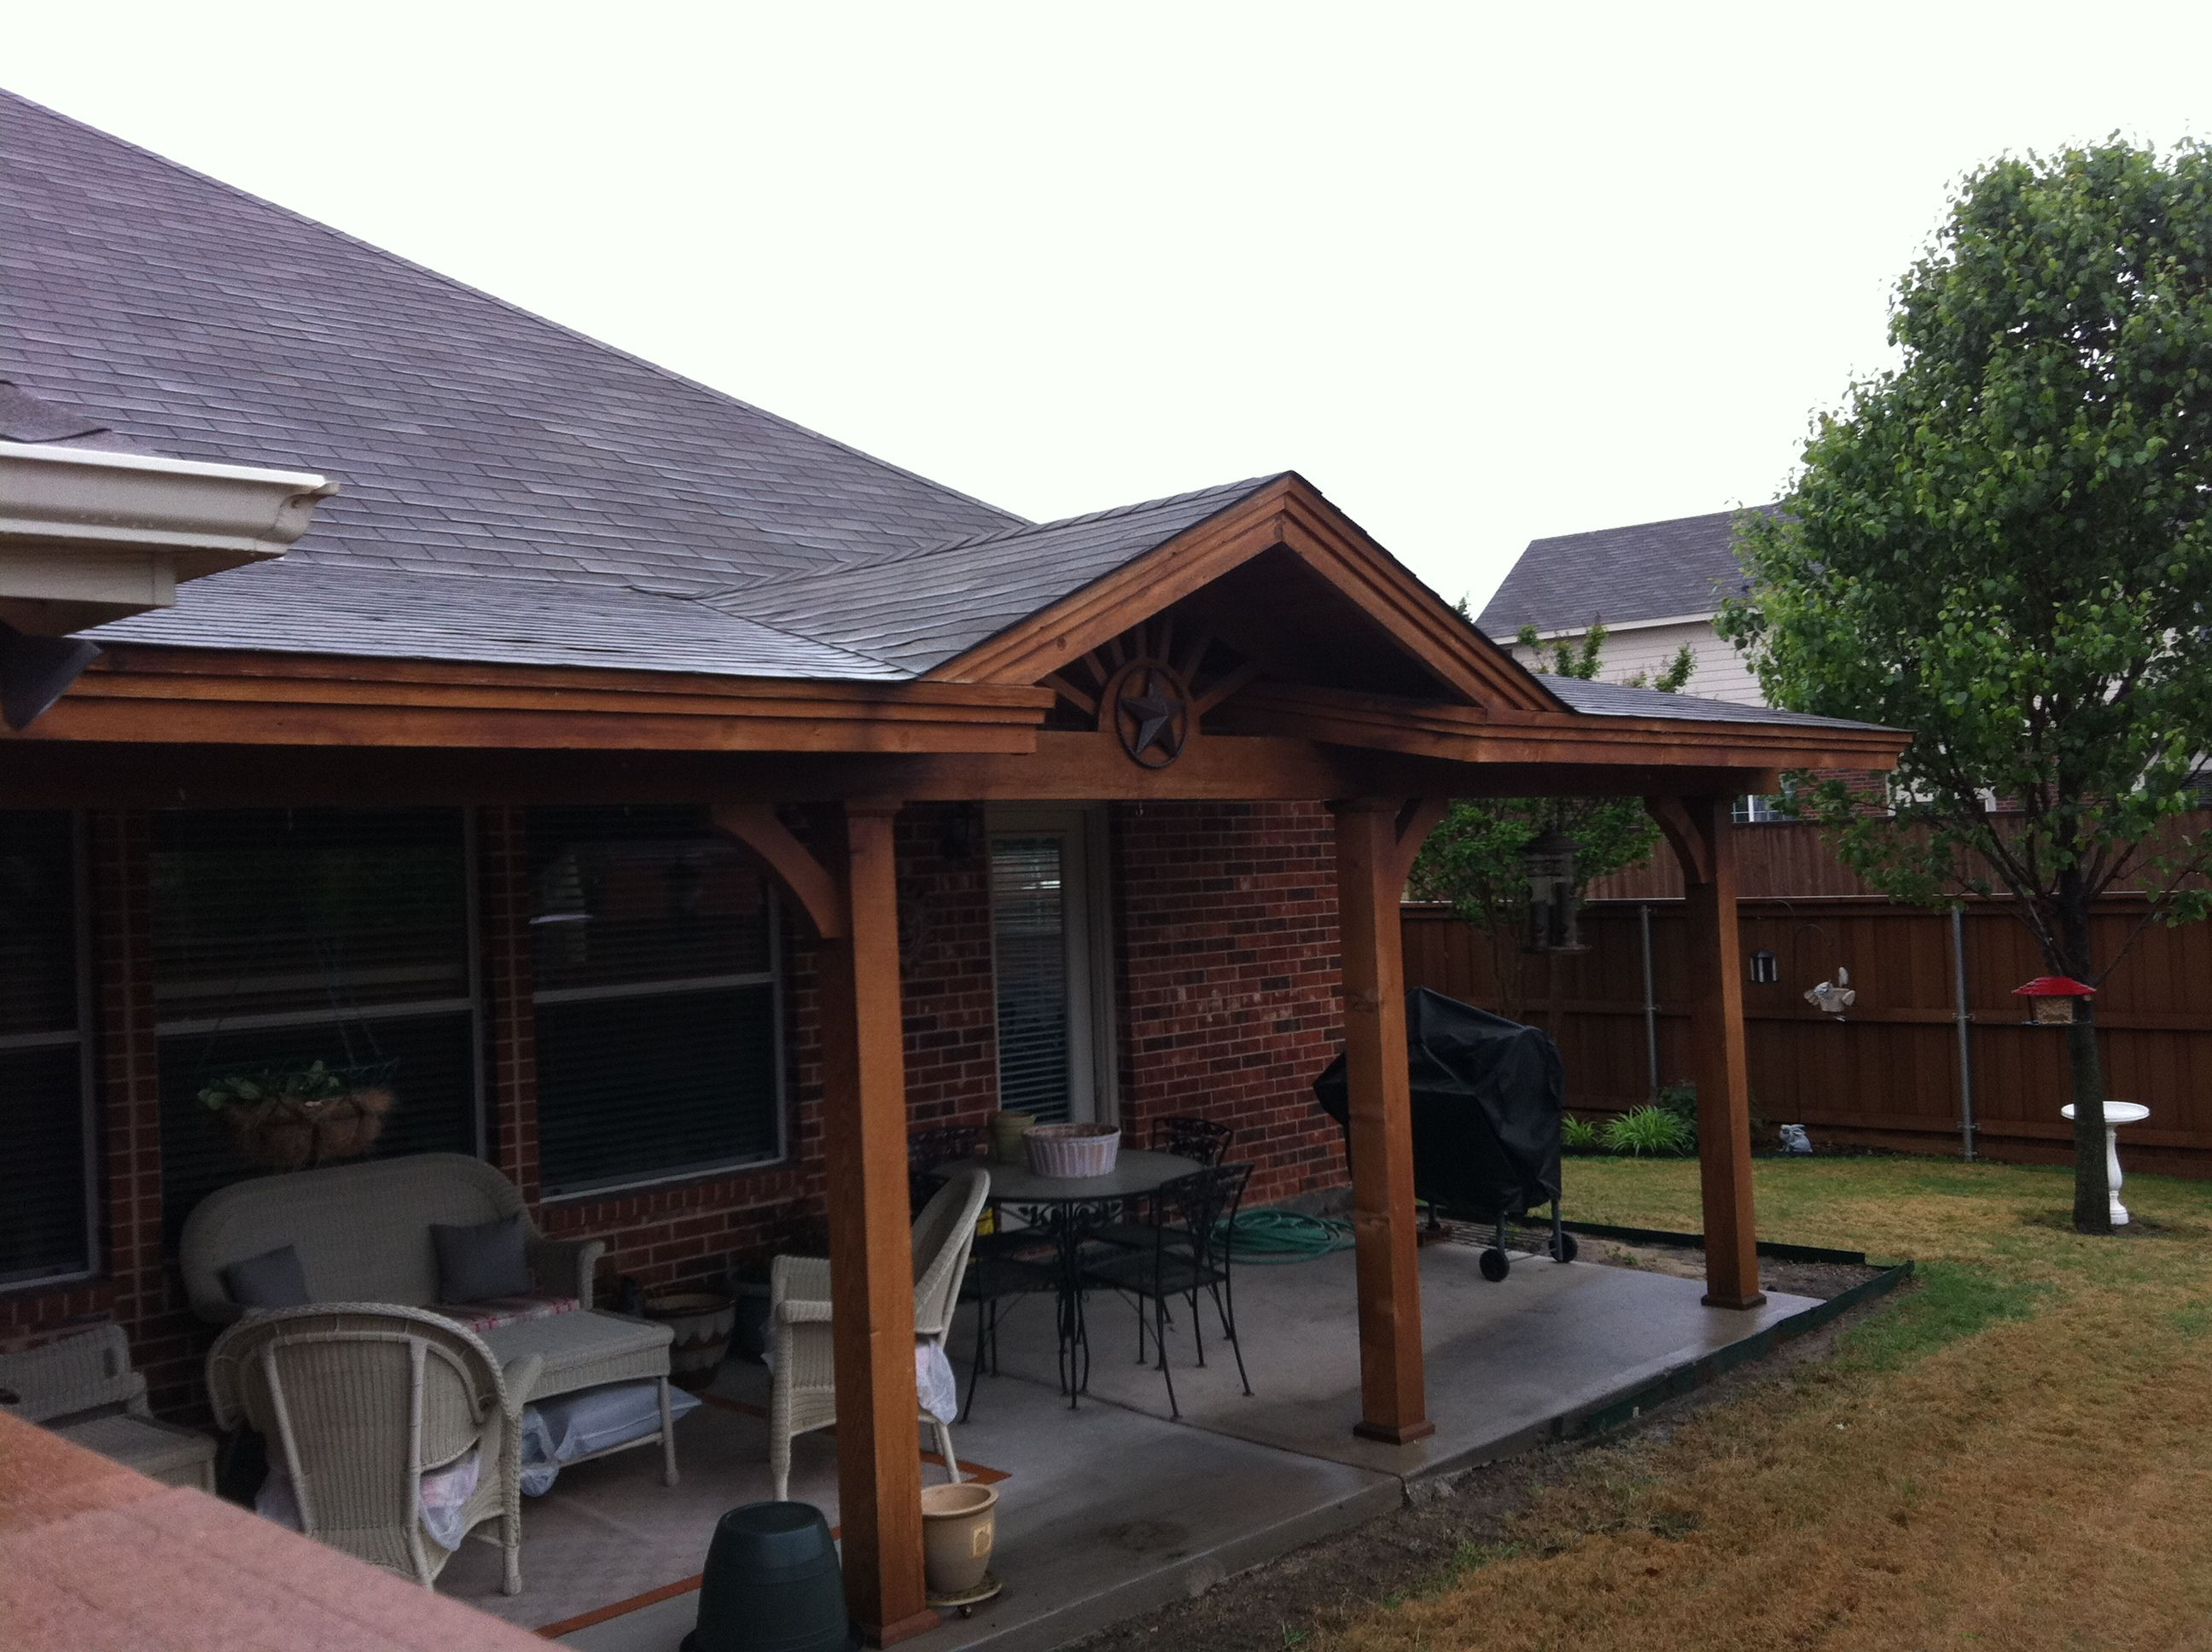 Mini Gable Patio Cover Patio Covers Pinterest